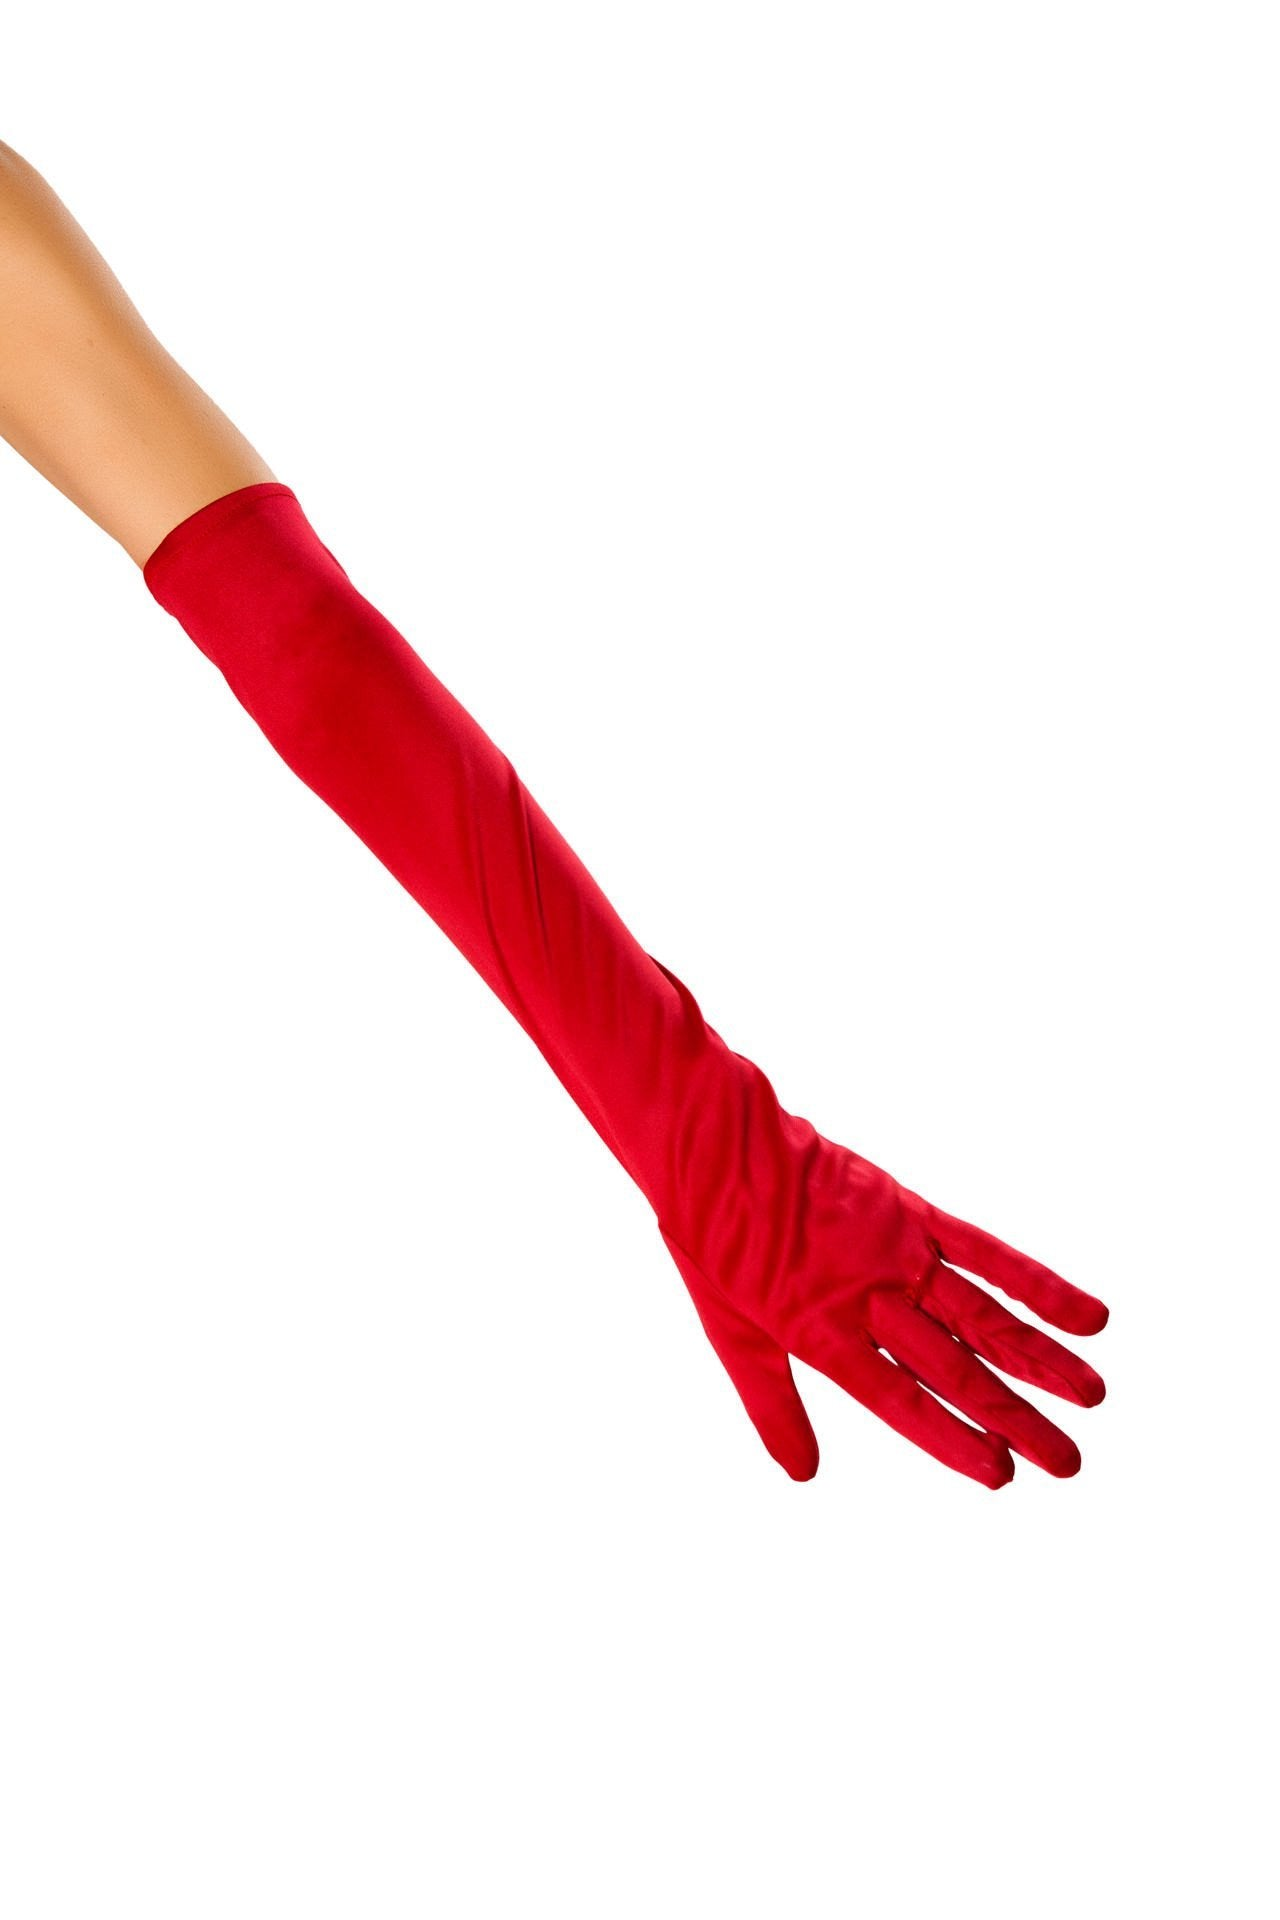 10104 - Stretch Satin Gloves